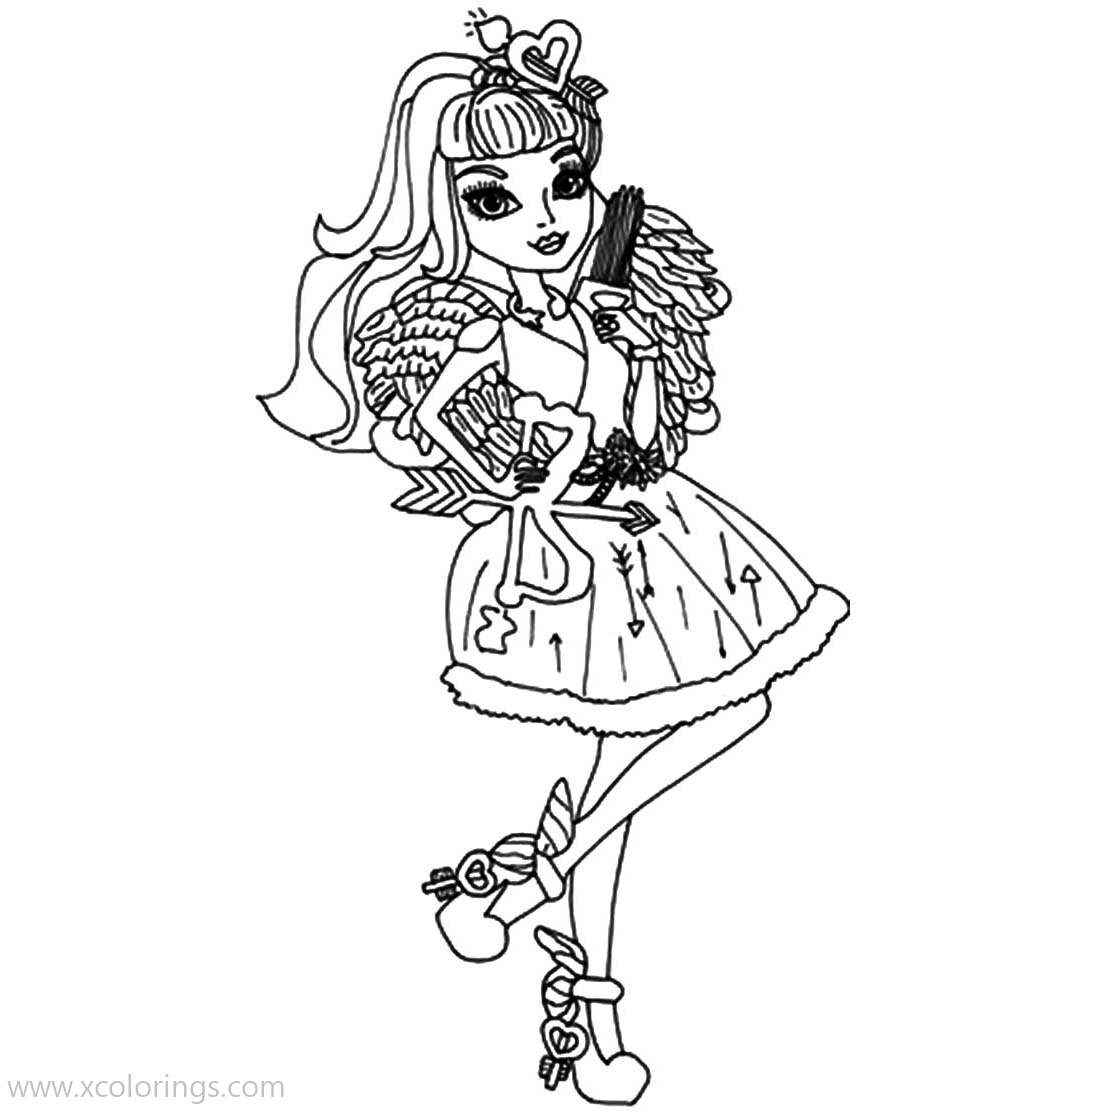 Free Cupid from Ever After High Coloring Pages printable